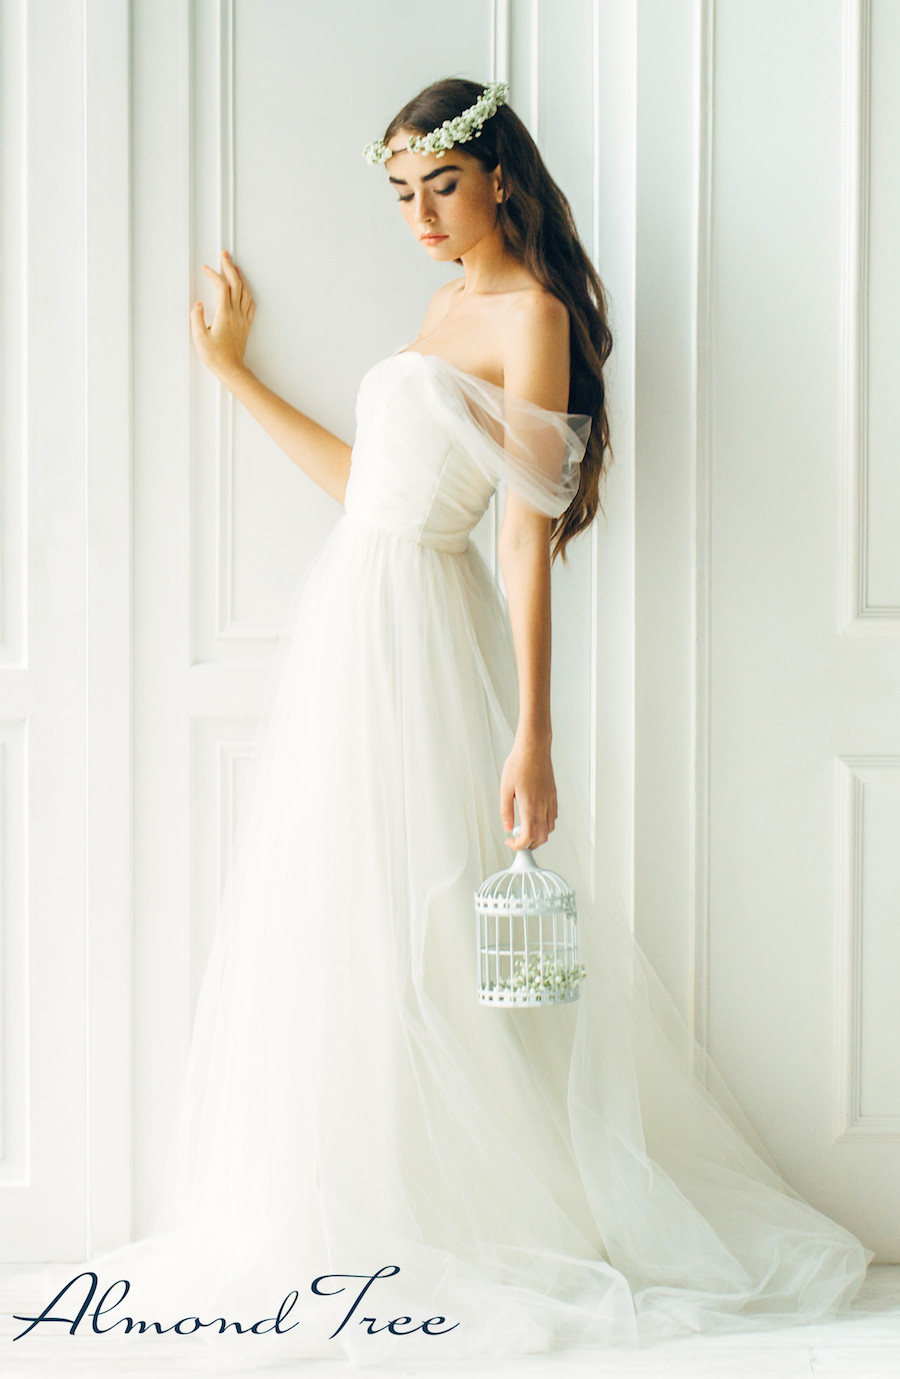 Boho Chic Bride in Glamourous White Bridal Wedding Gown from Almond Tree Wedding Boutique in Phoenix Arizona